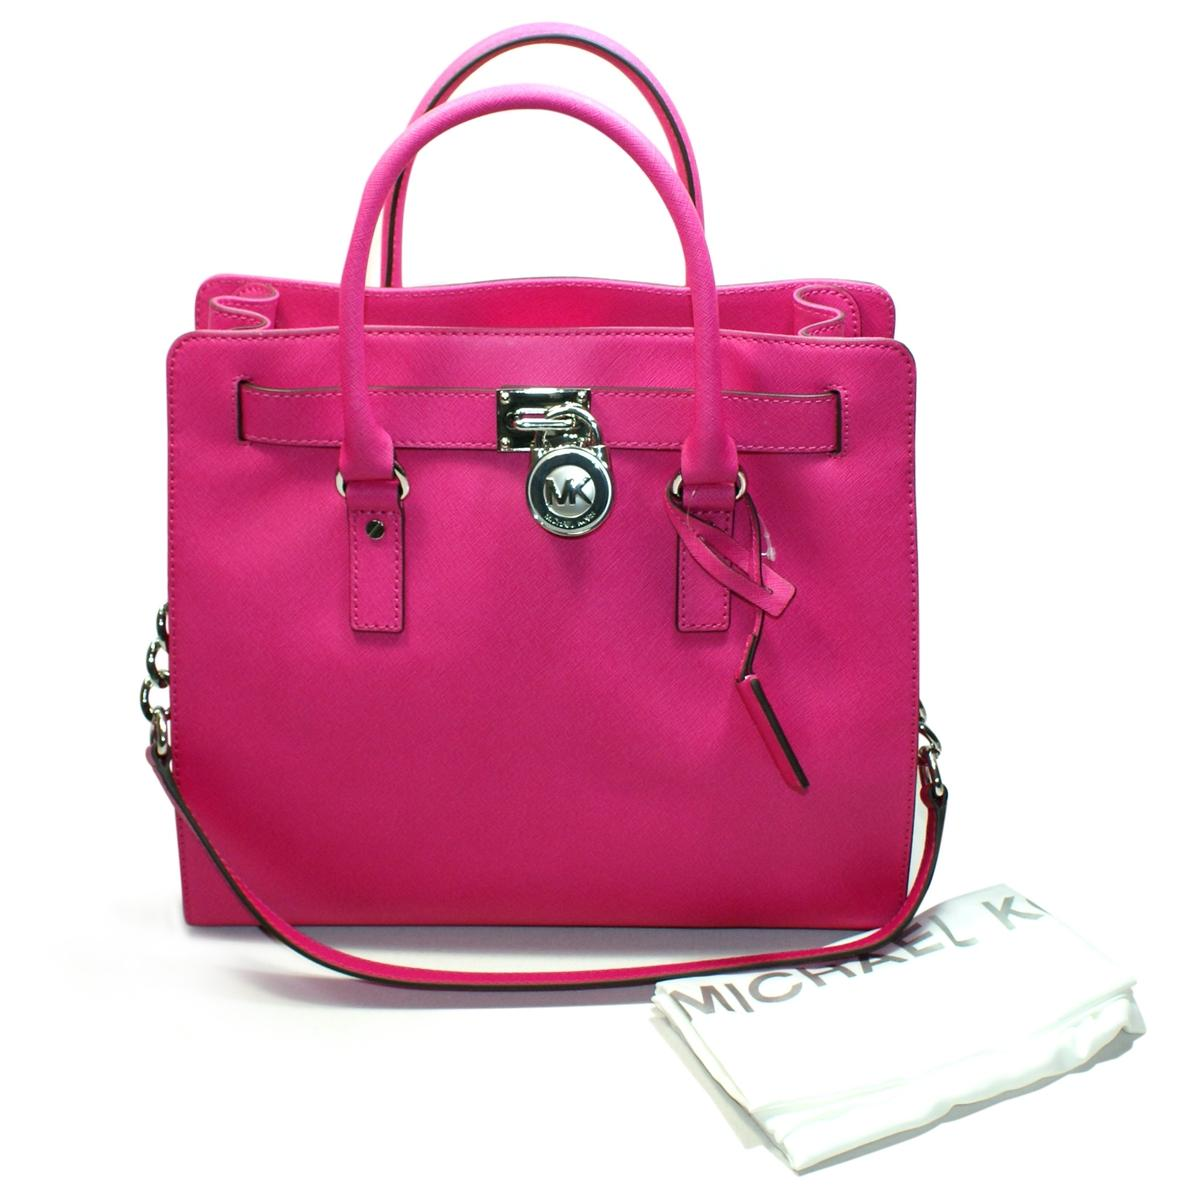 Home Michael Kors Hamilton Large Genuine Leather Tote Shoulder Bag Raspberry Click Thumbnail To Zoom Found